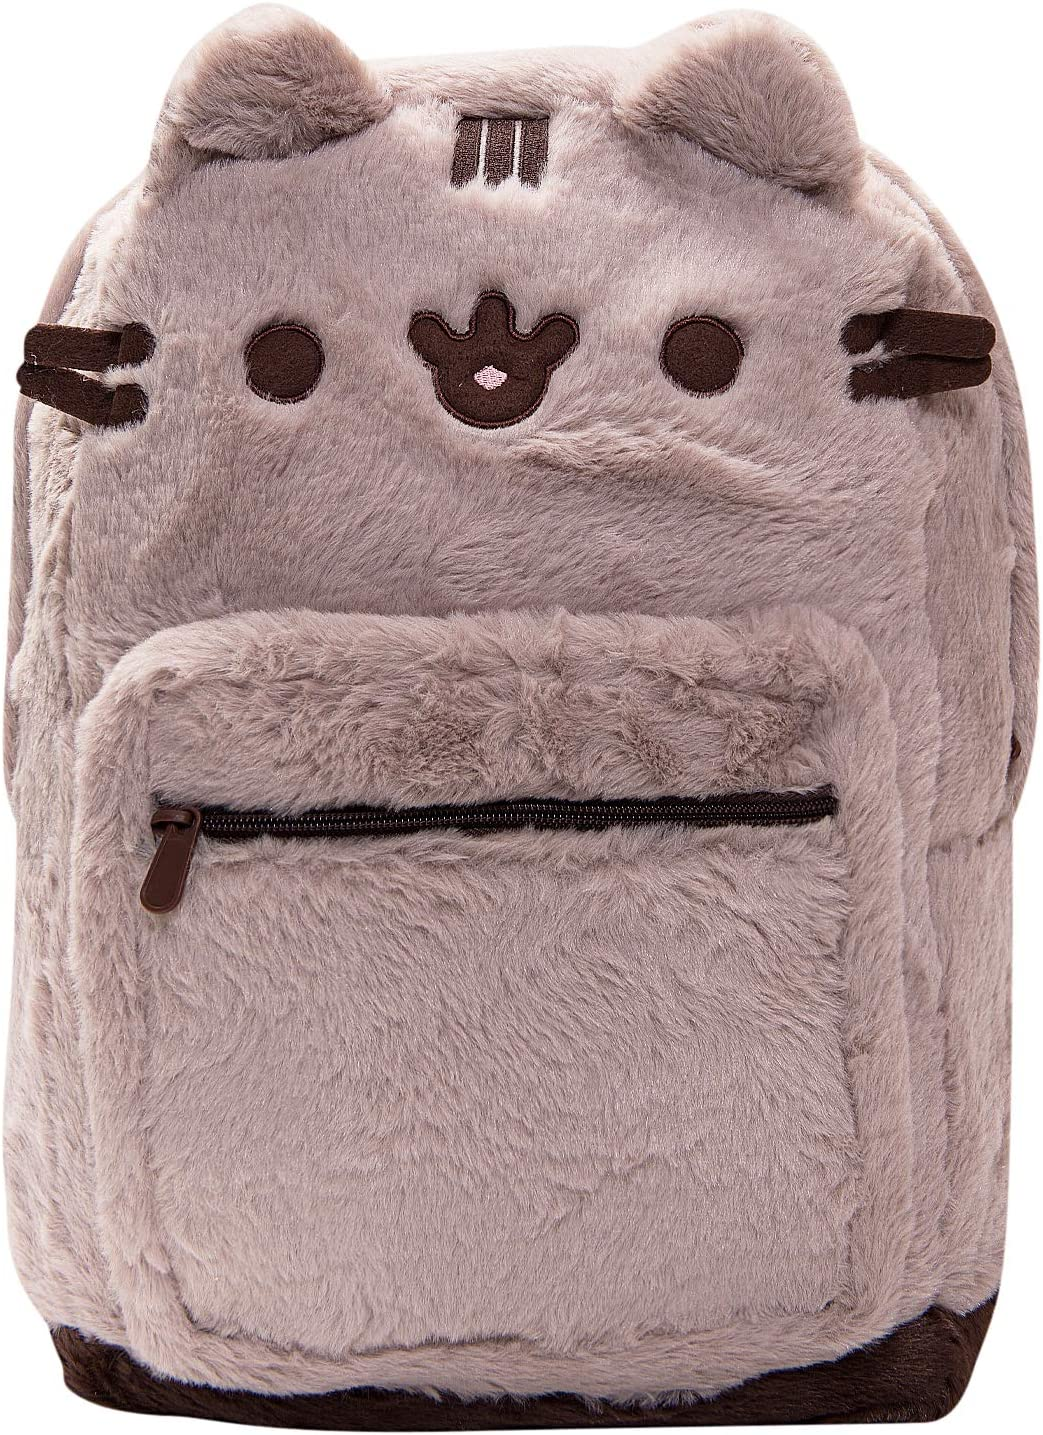 Pusheen The Cat Backpack Cheap super special price With Sale for girls Face Fuzzy